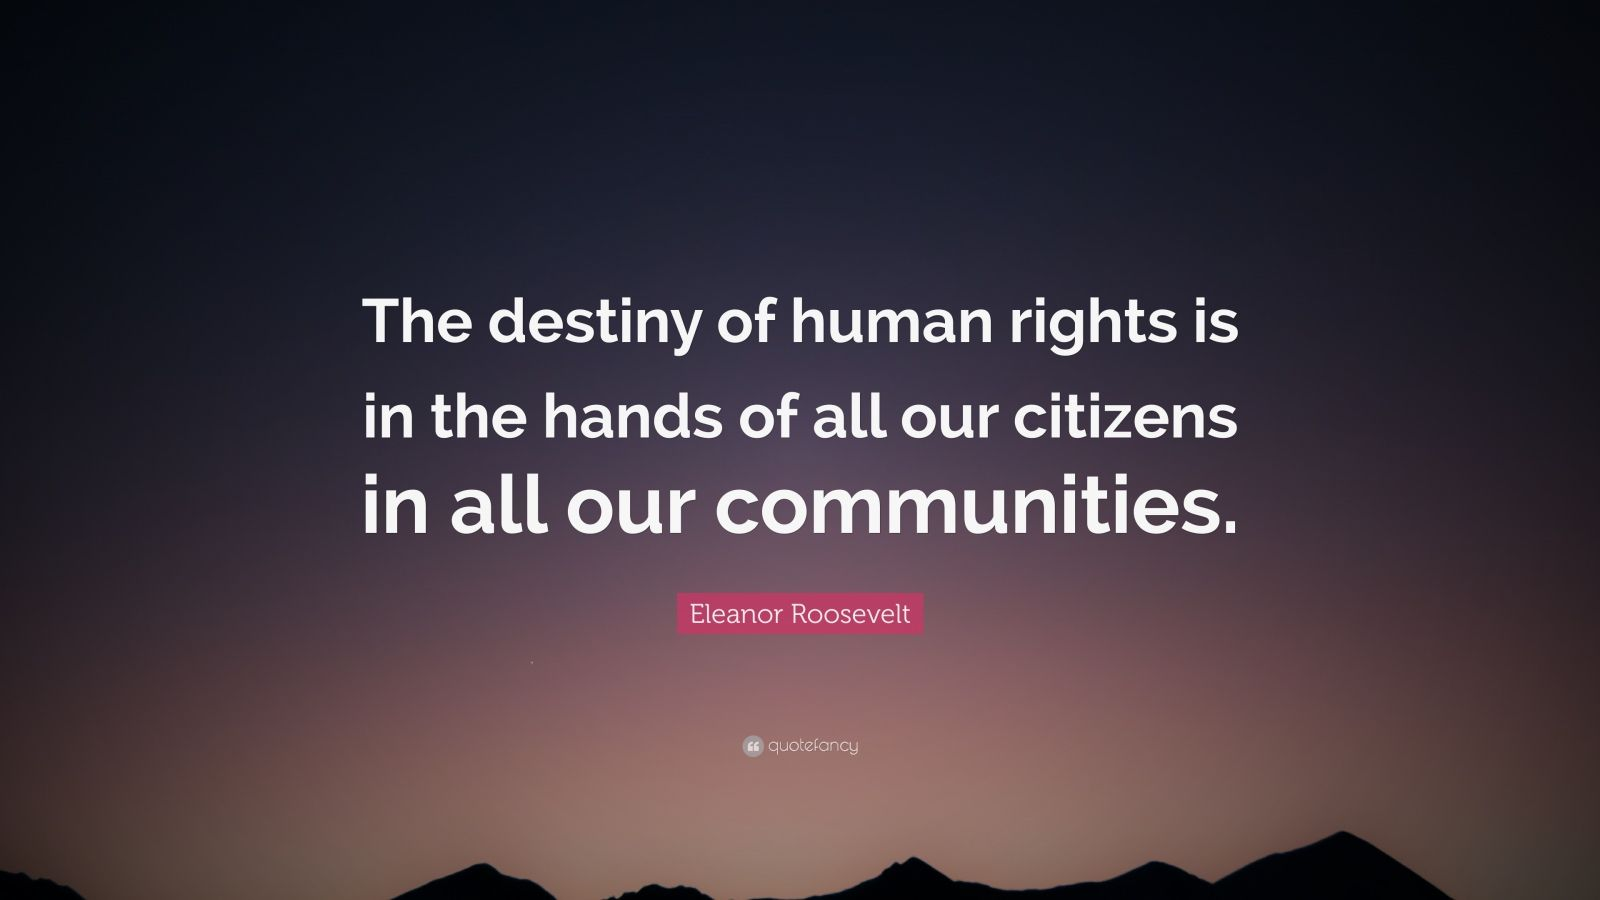 Wallpaper With Quotes Attitude Eleanor Roosevelt Quote The Destiny Of Human Rights Is